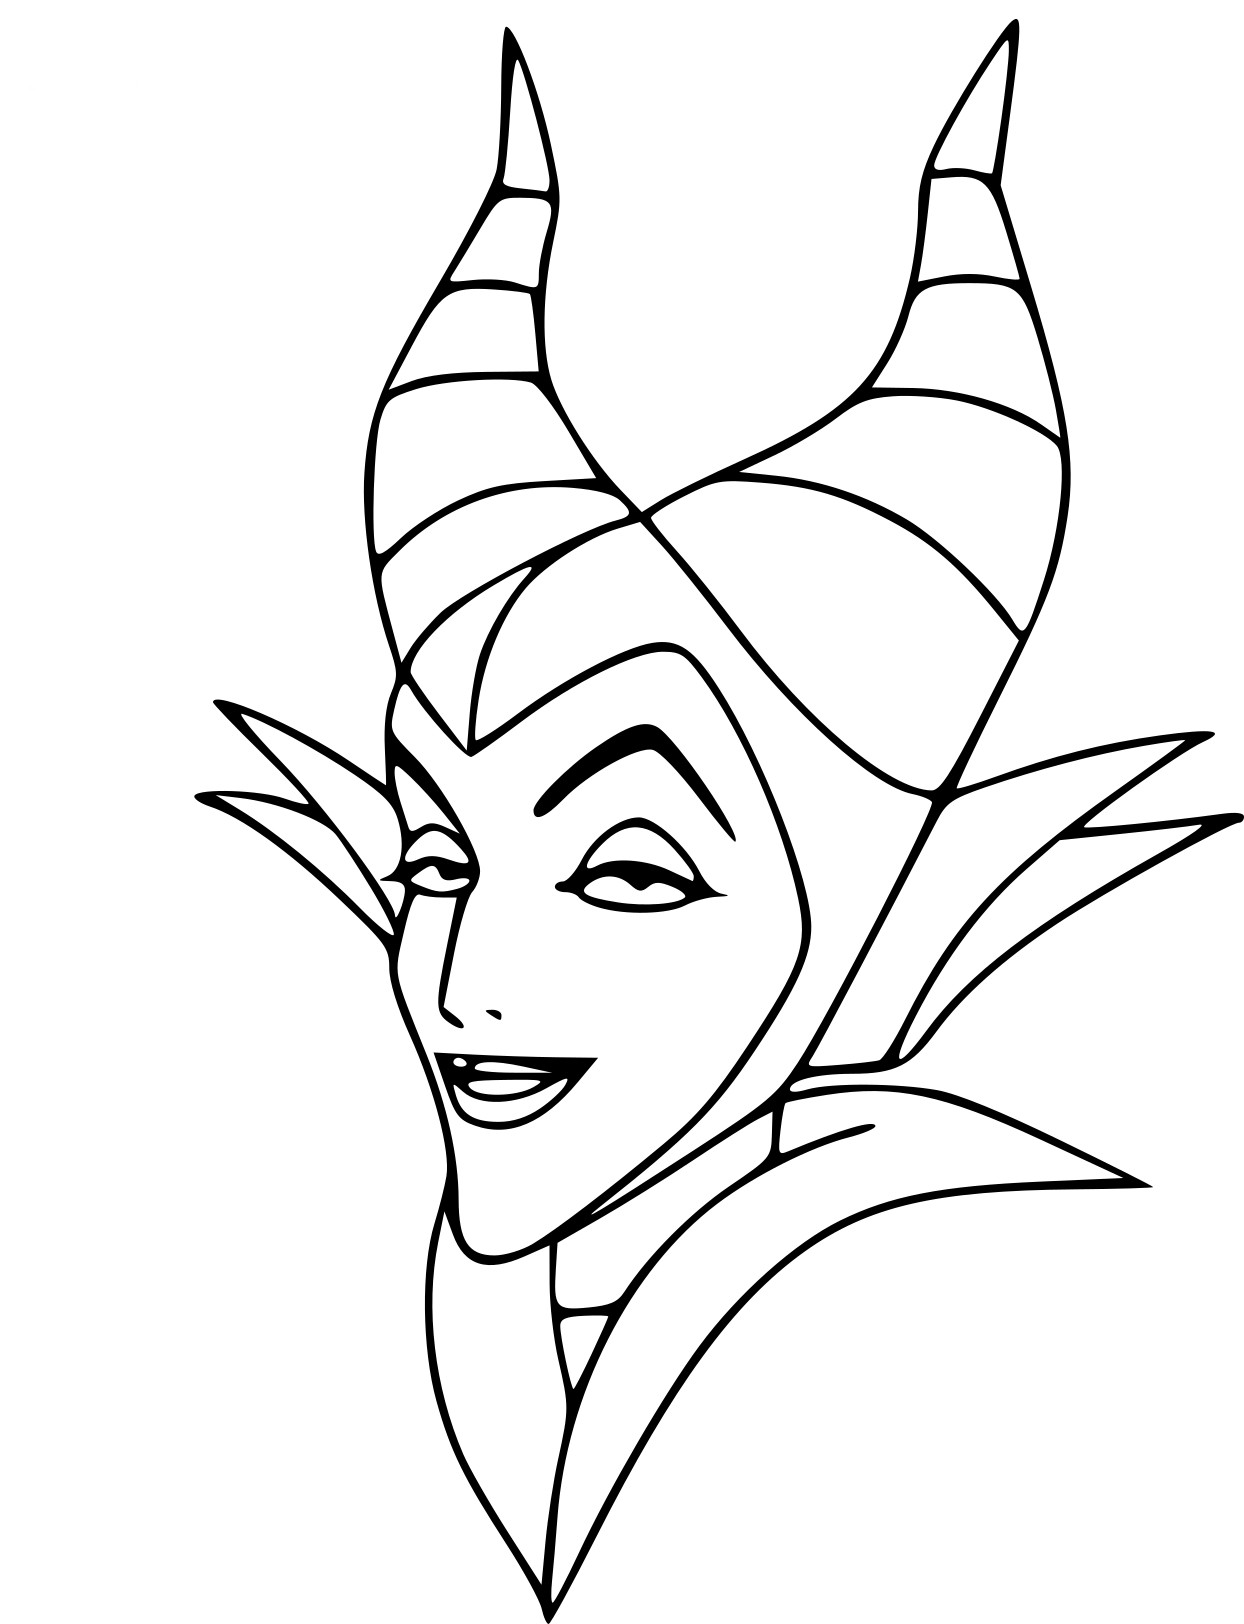 Alice in Wonderland coloring pages Free Disney coloring